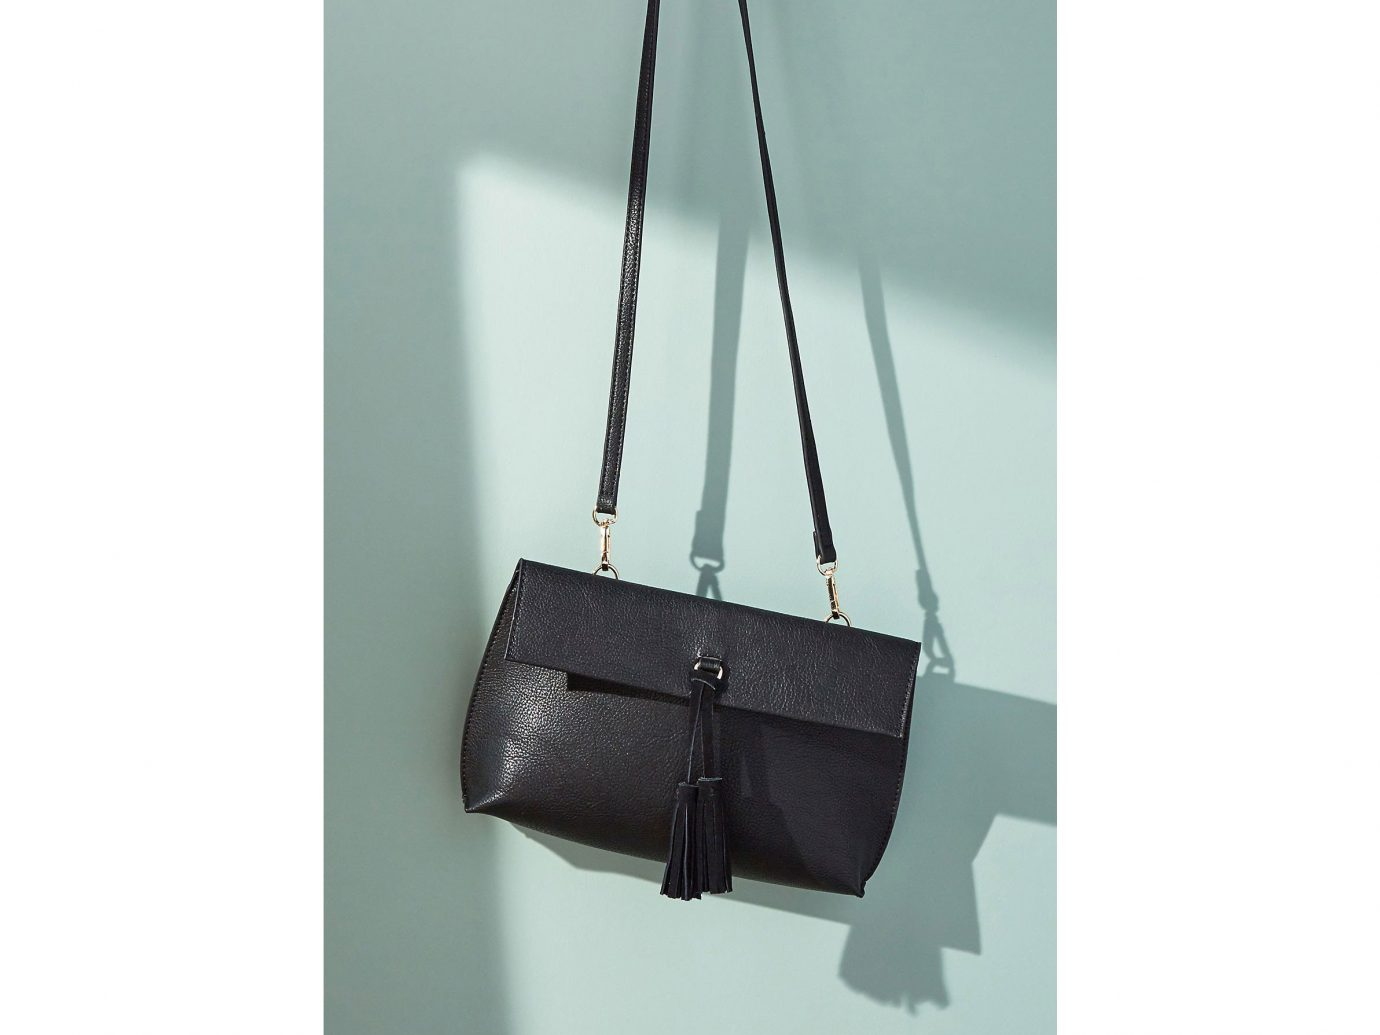 City NYC Style + Design Travel Shop bag wall indoor handbag shoulder bag product black product design leather accessory